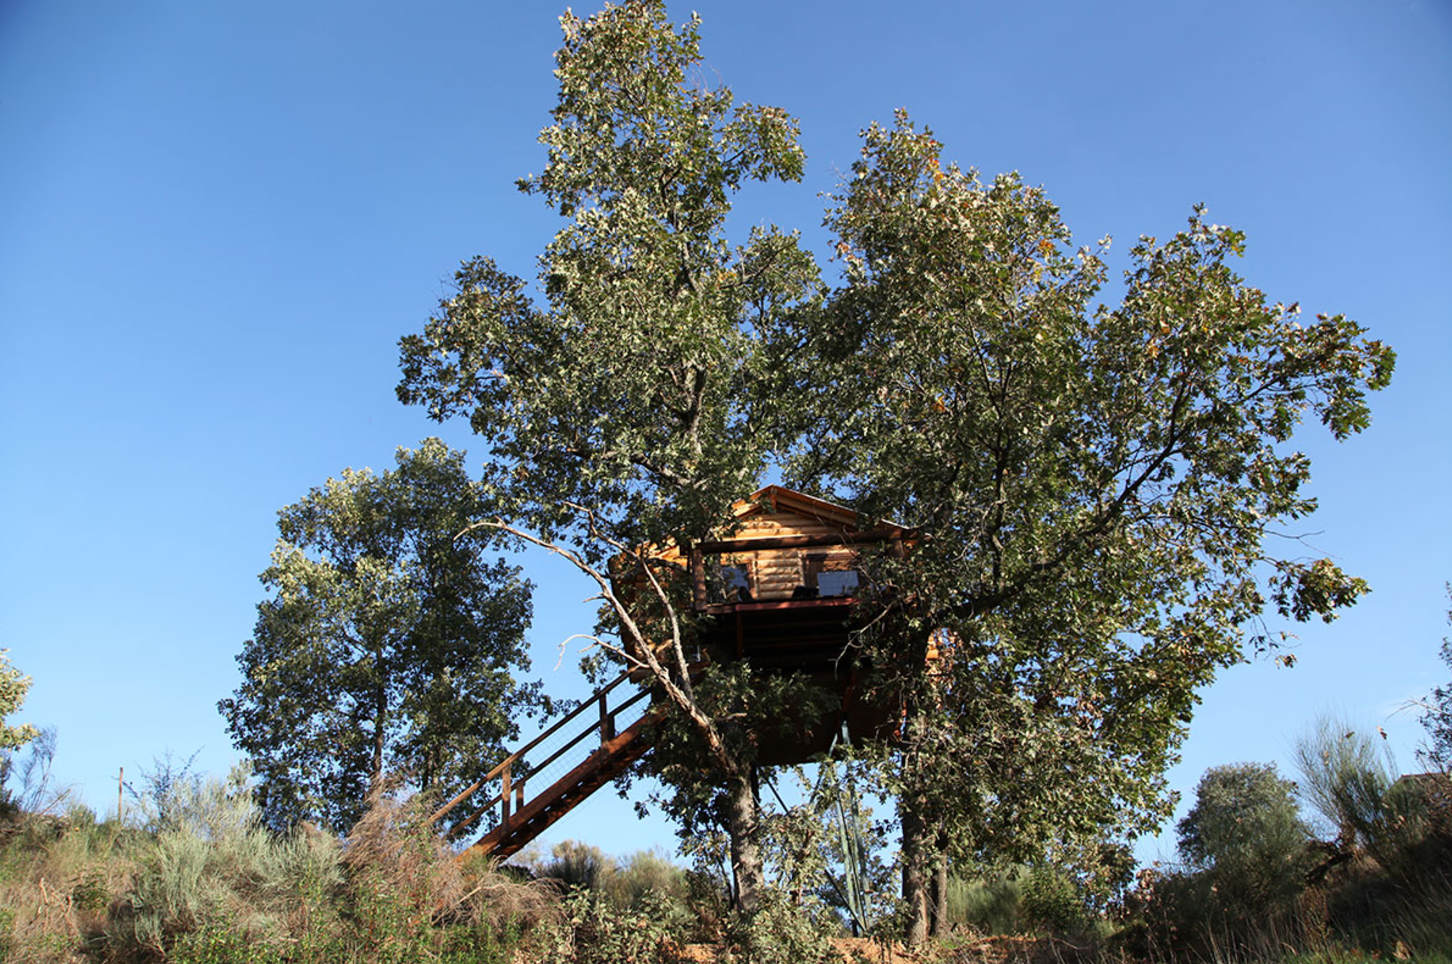 Eco-Friendly Tree House Rental with Breakfast Included in Extremadura, Spain